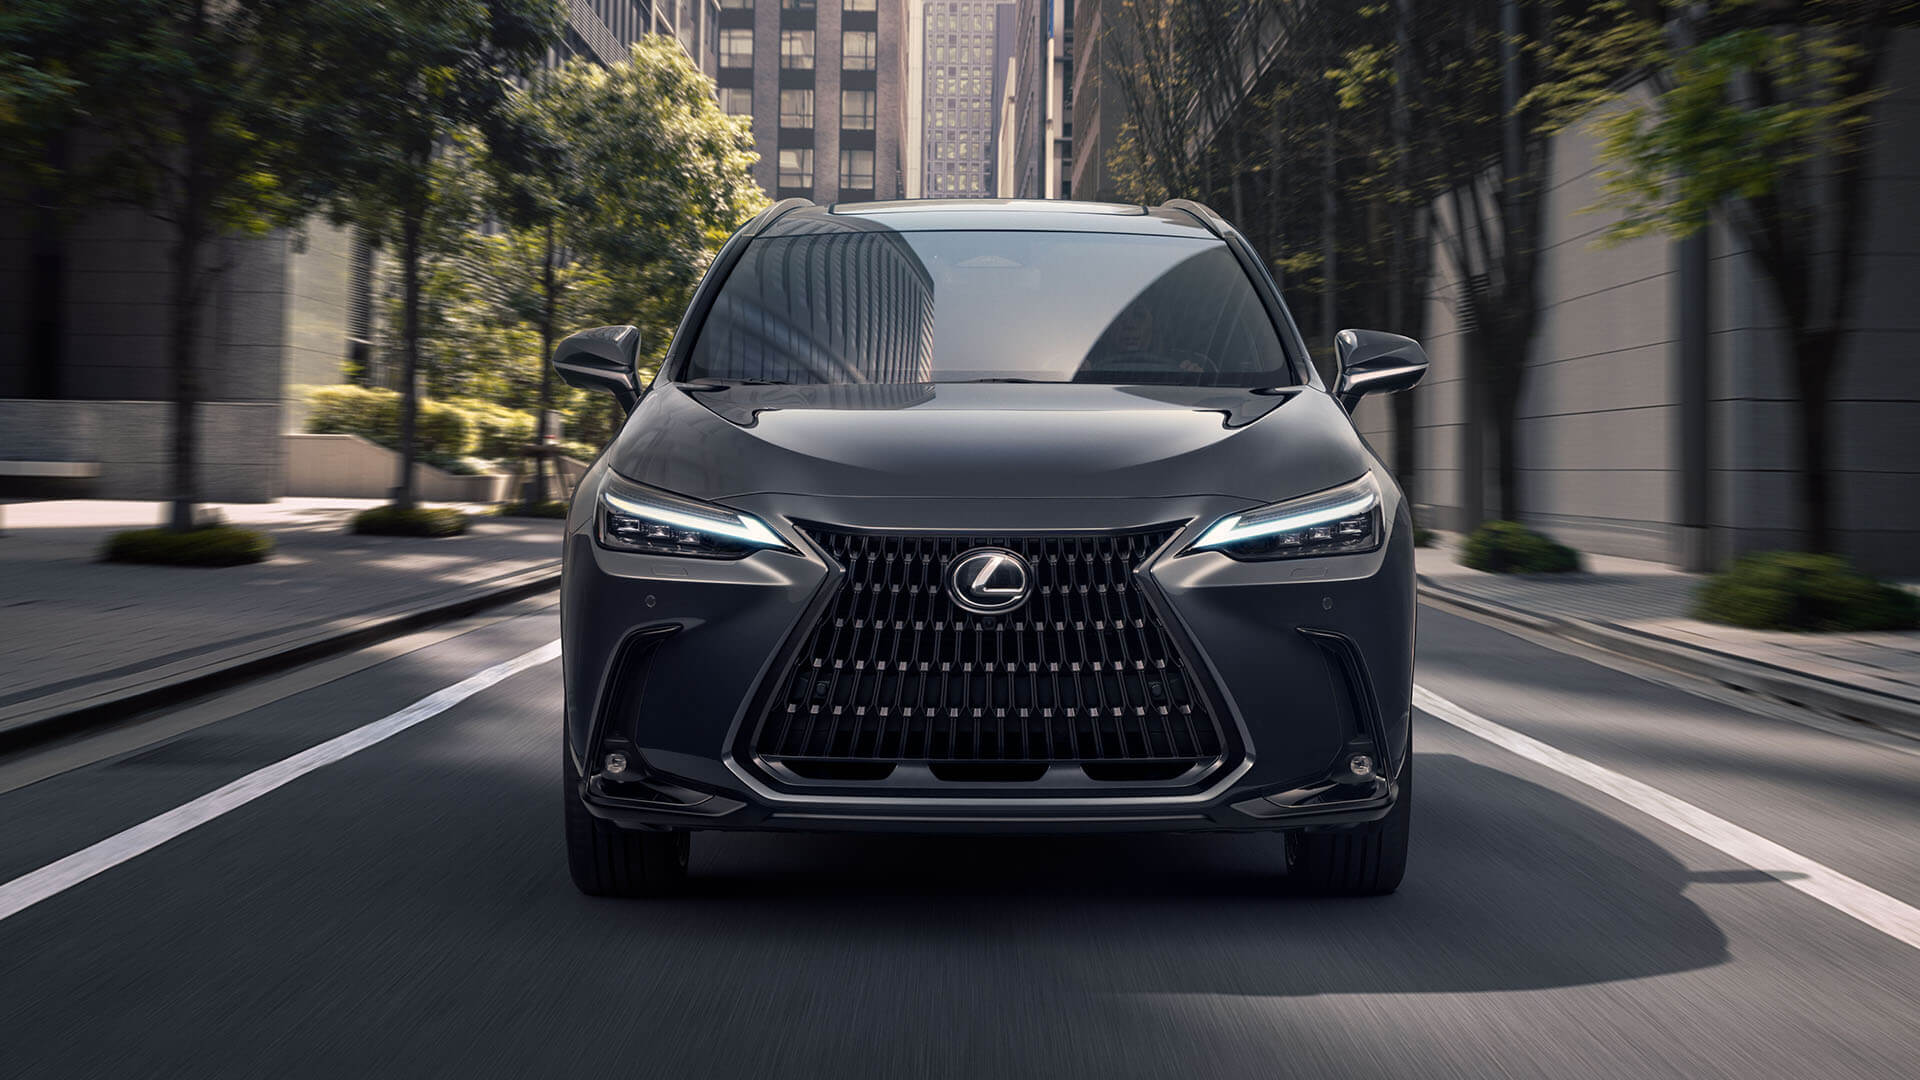 2021 lexus nx experience exterior front new signature grille